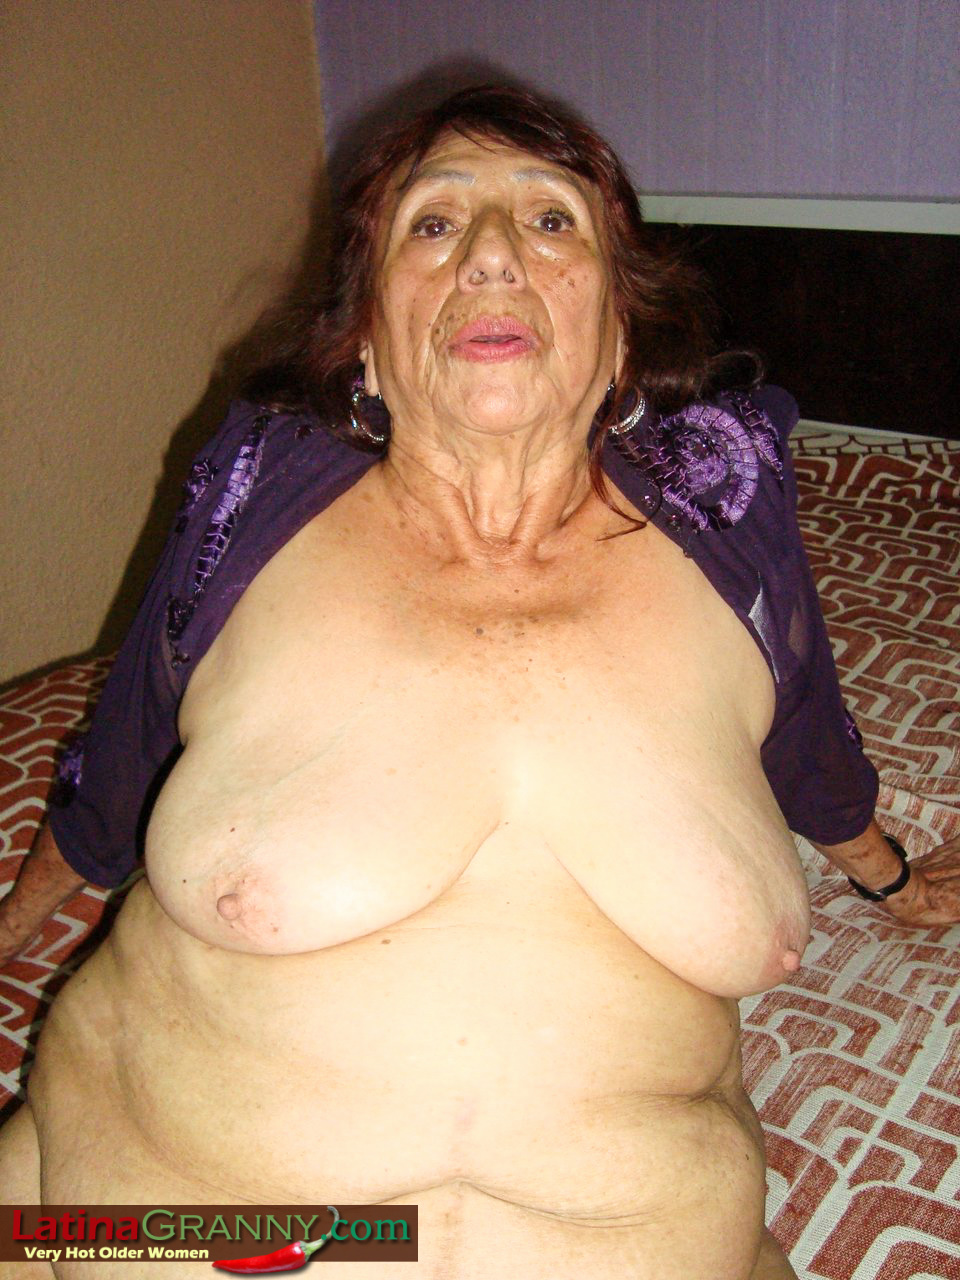 all this sites you ll find in the member area of i latina granny have